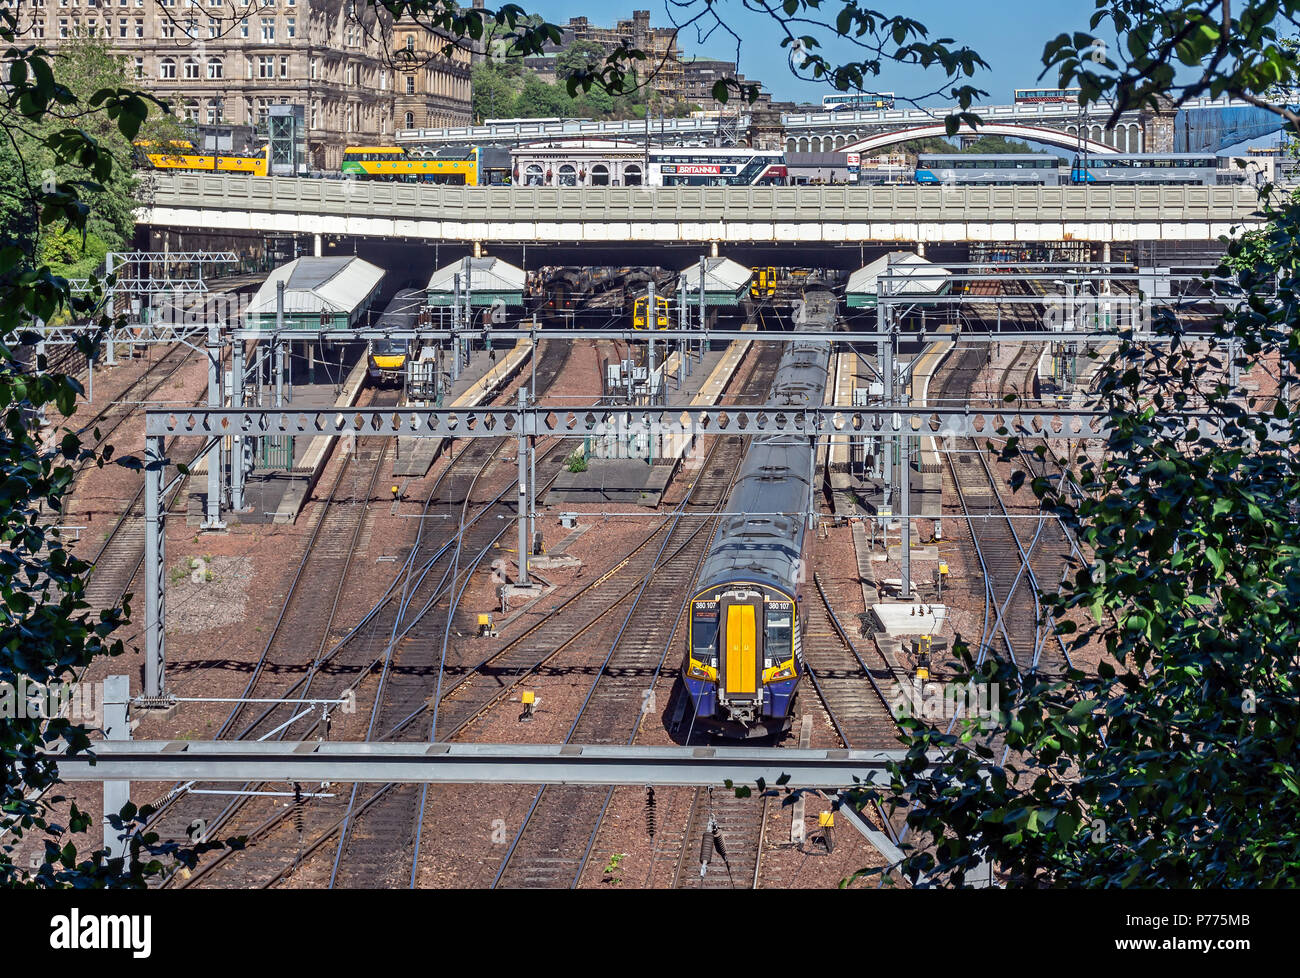 Electric Multiple Unit Class 380 arriving at Waverley Station in Edinburgh city Scotland UK from Glasgow - Stock Image